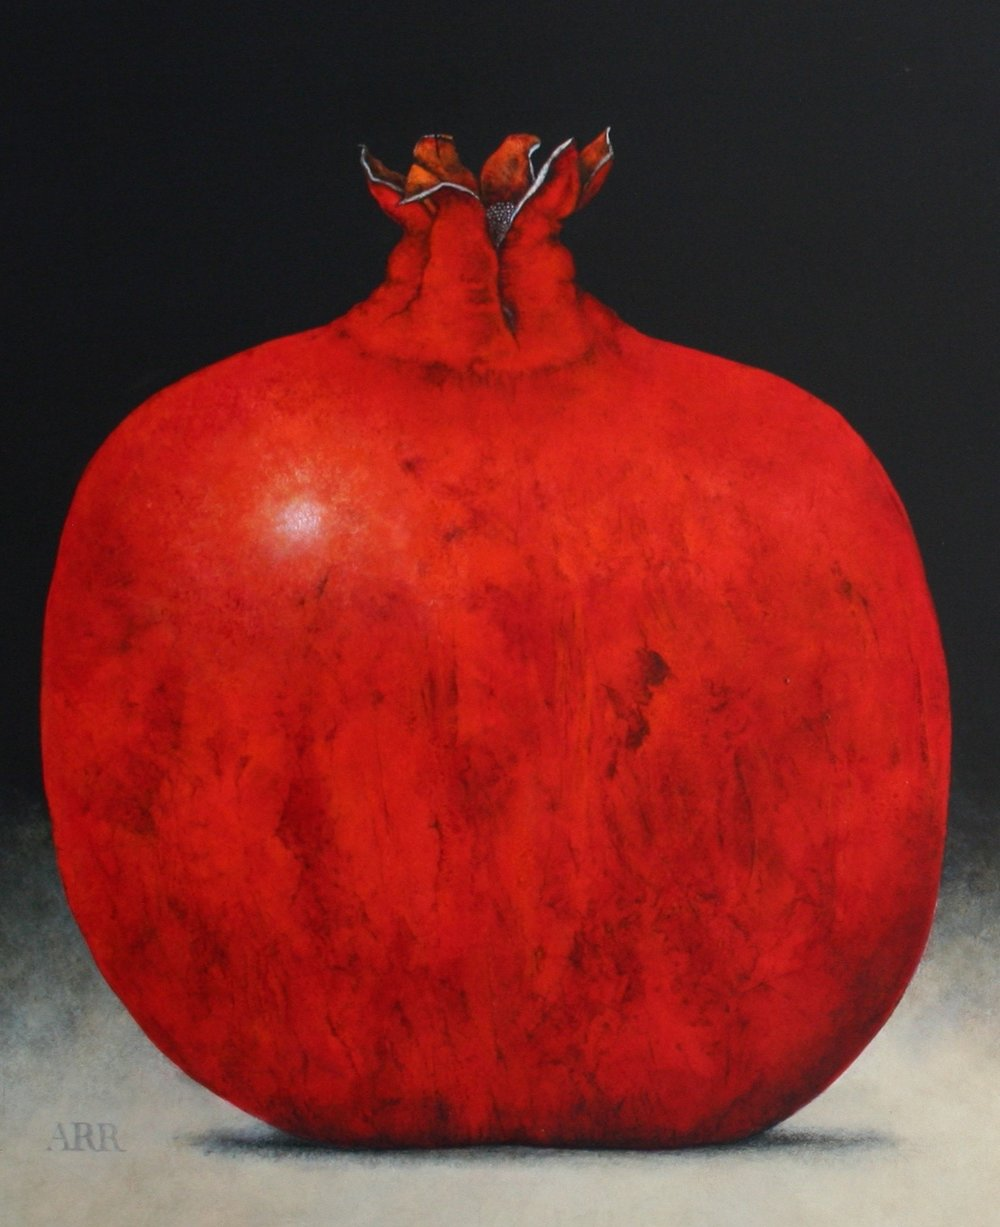 Pomegranate - Large